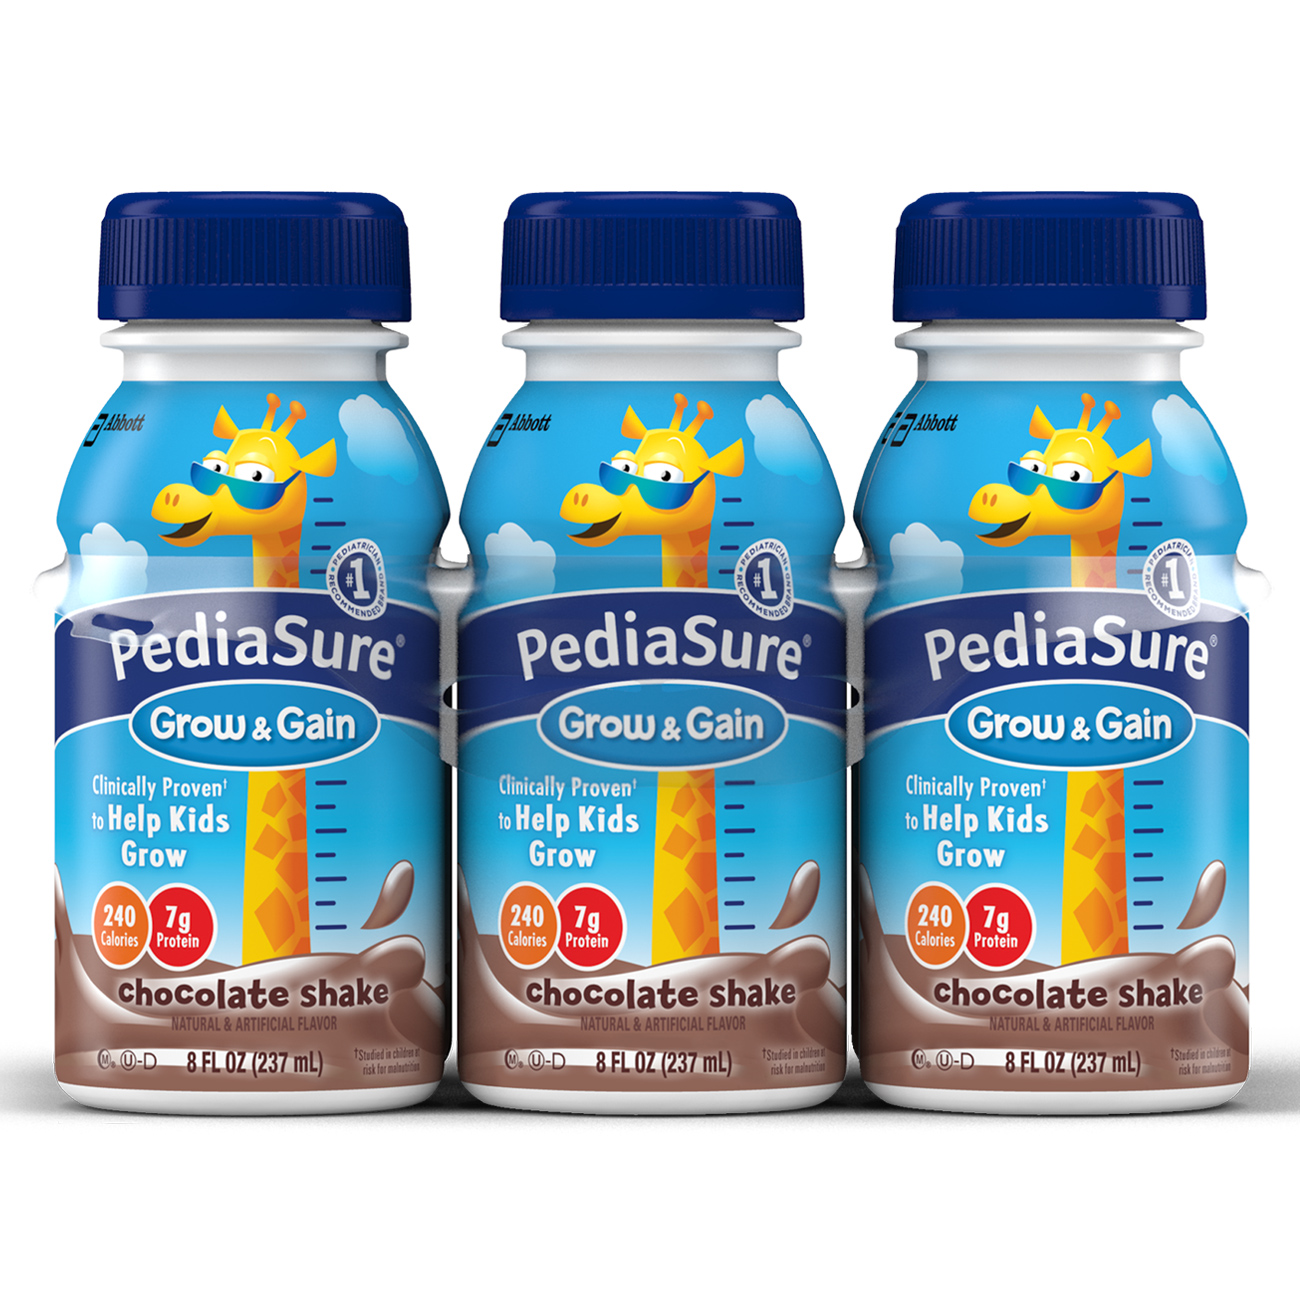 PediaSure Nutrition Drink, Chocolate Shake, 8 fl oz (Pack of 6)